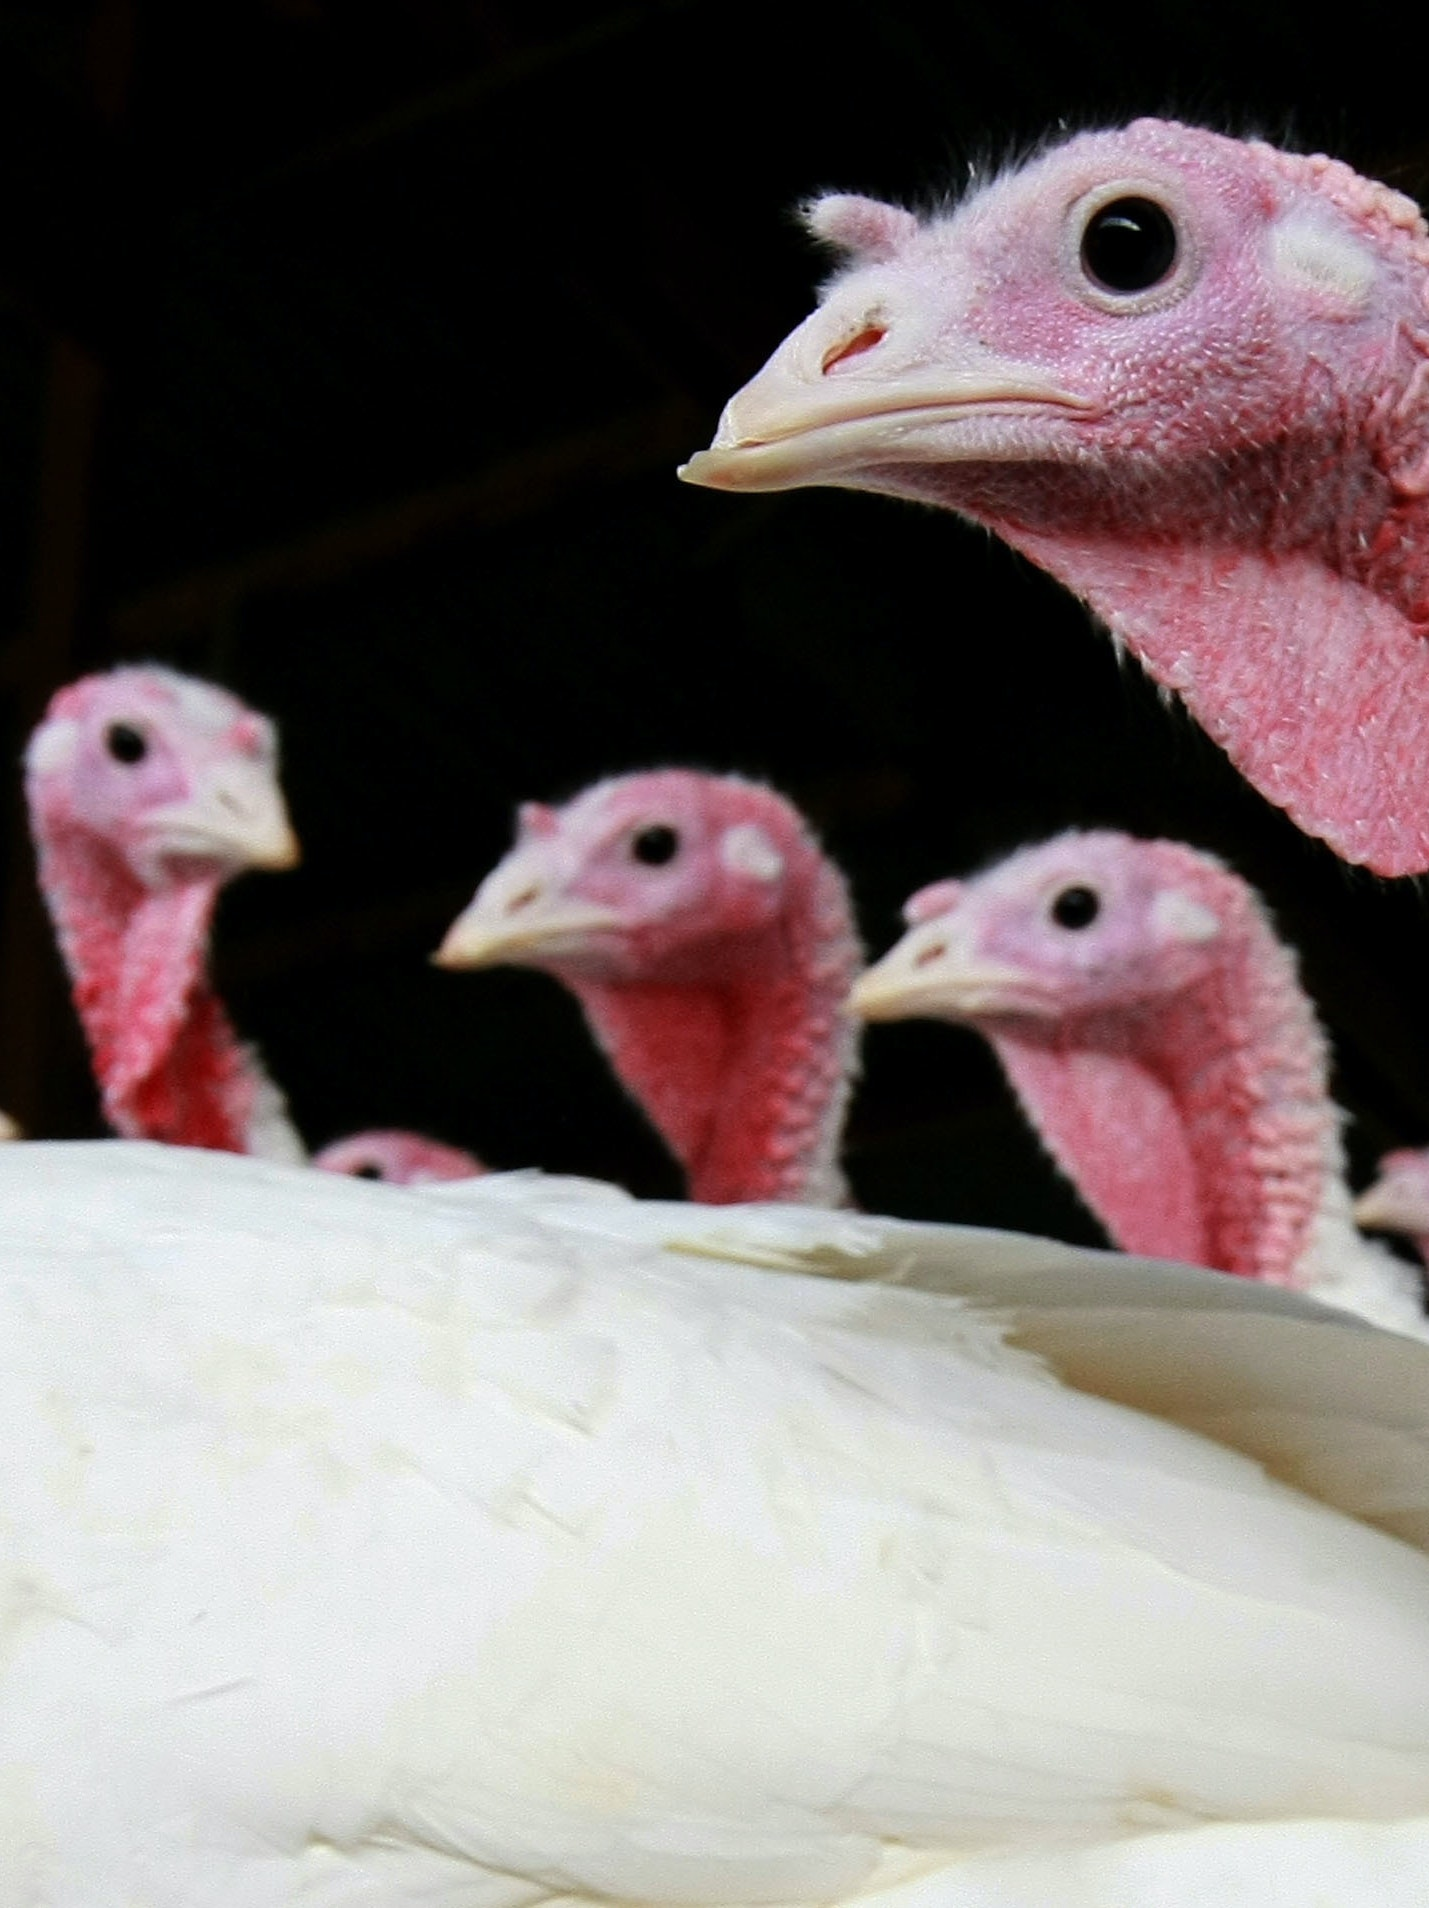 With Thanksgiving less than a week away, here's how you can bring a turkey on your travels.